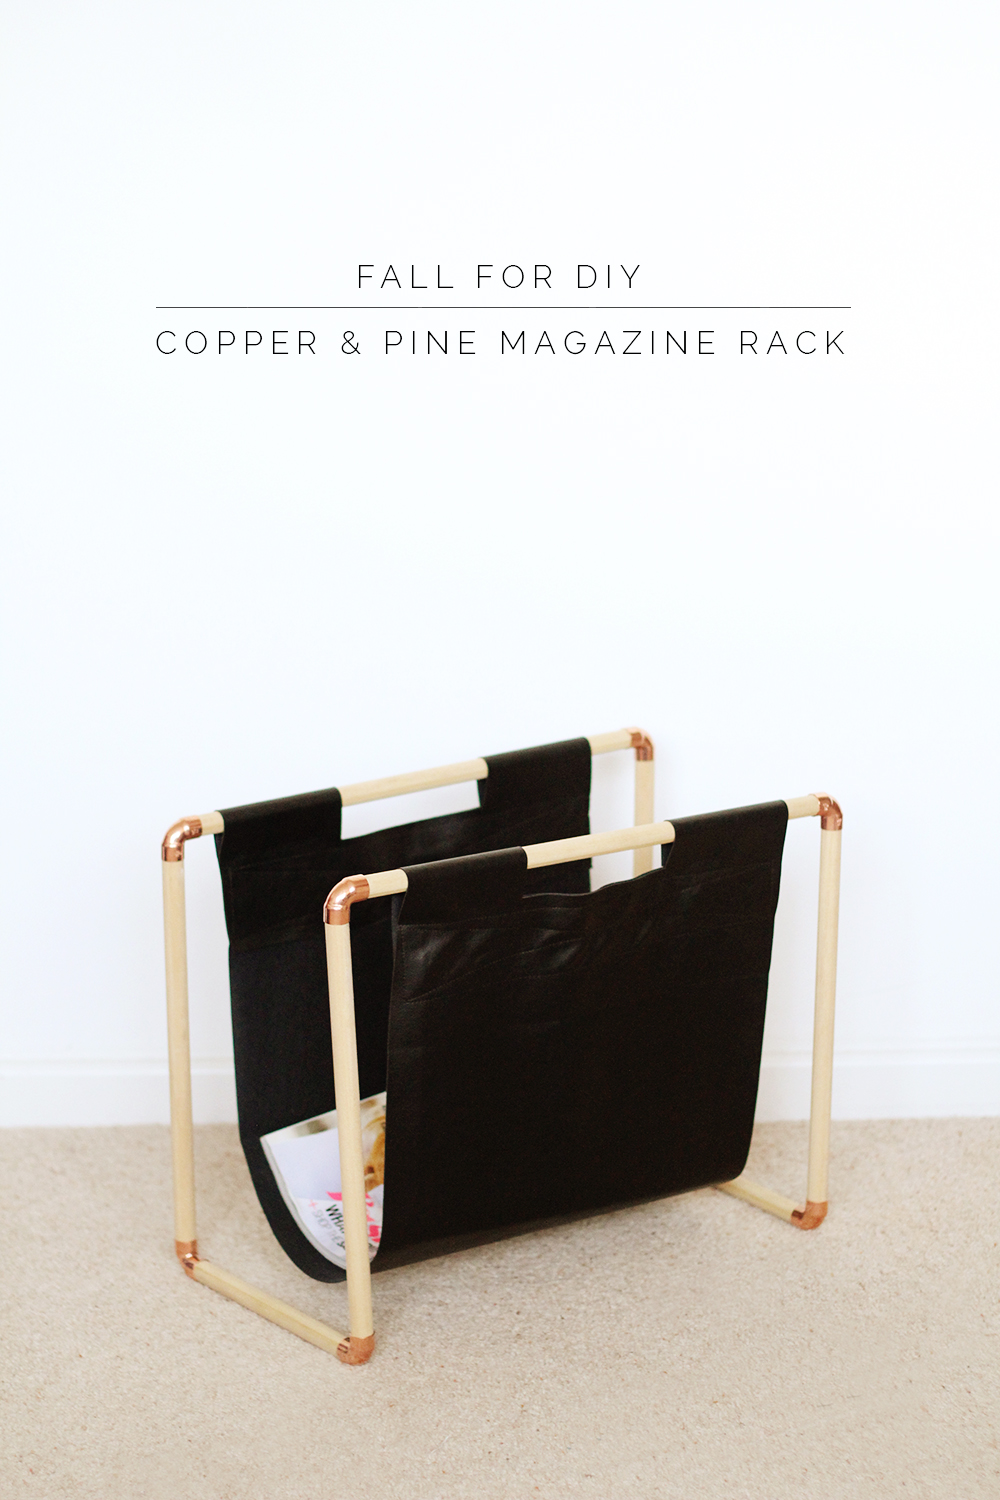 diy copper pine magazine rack fall for diy